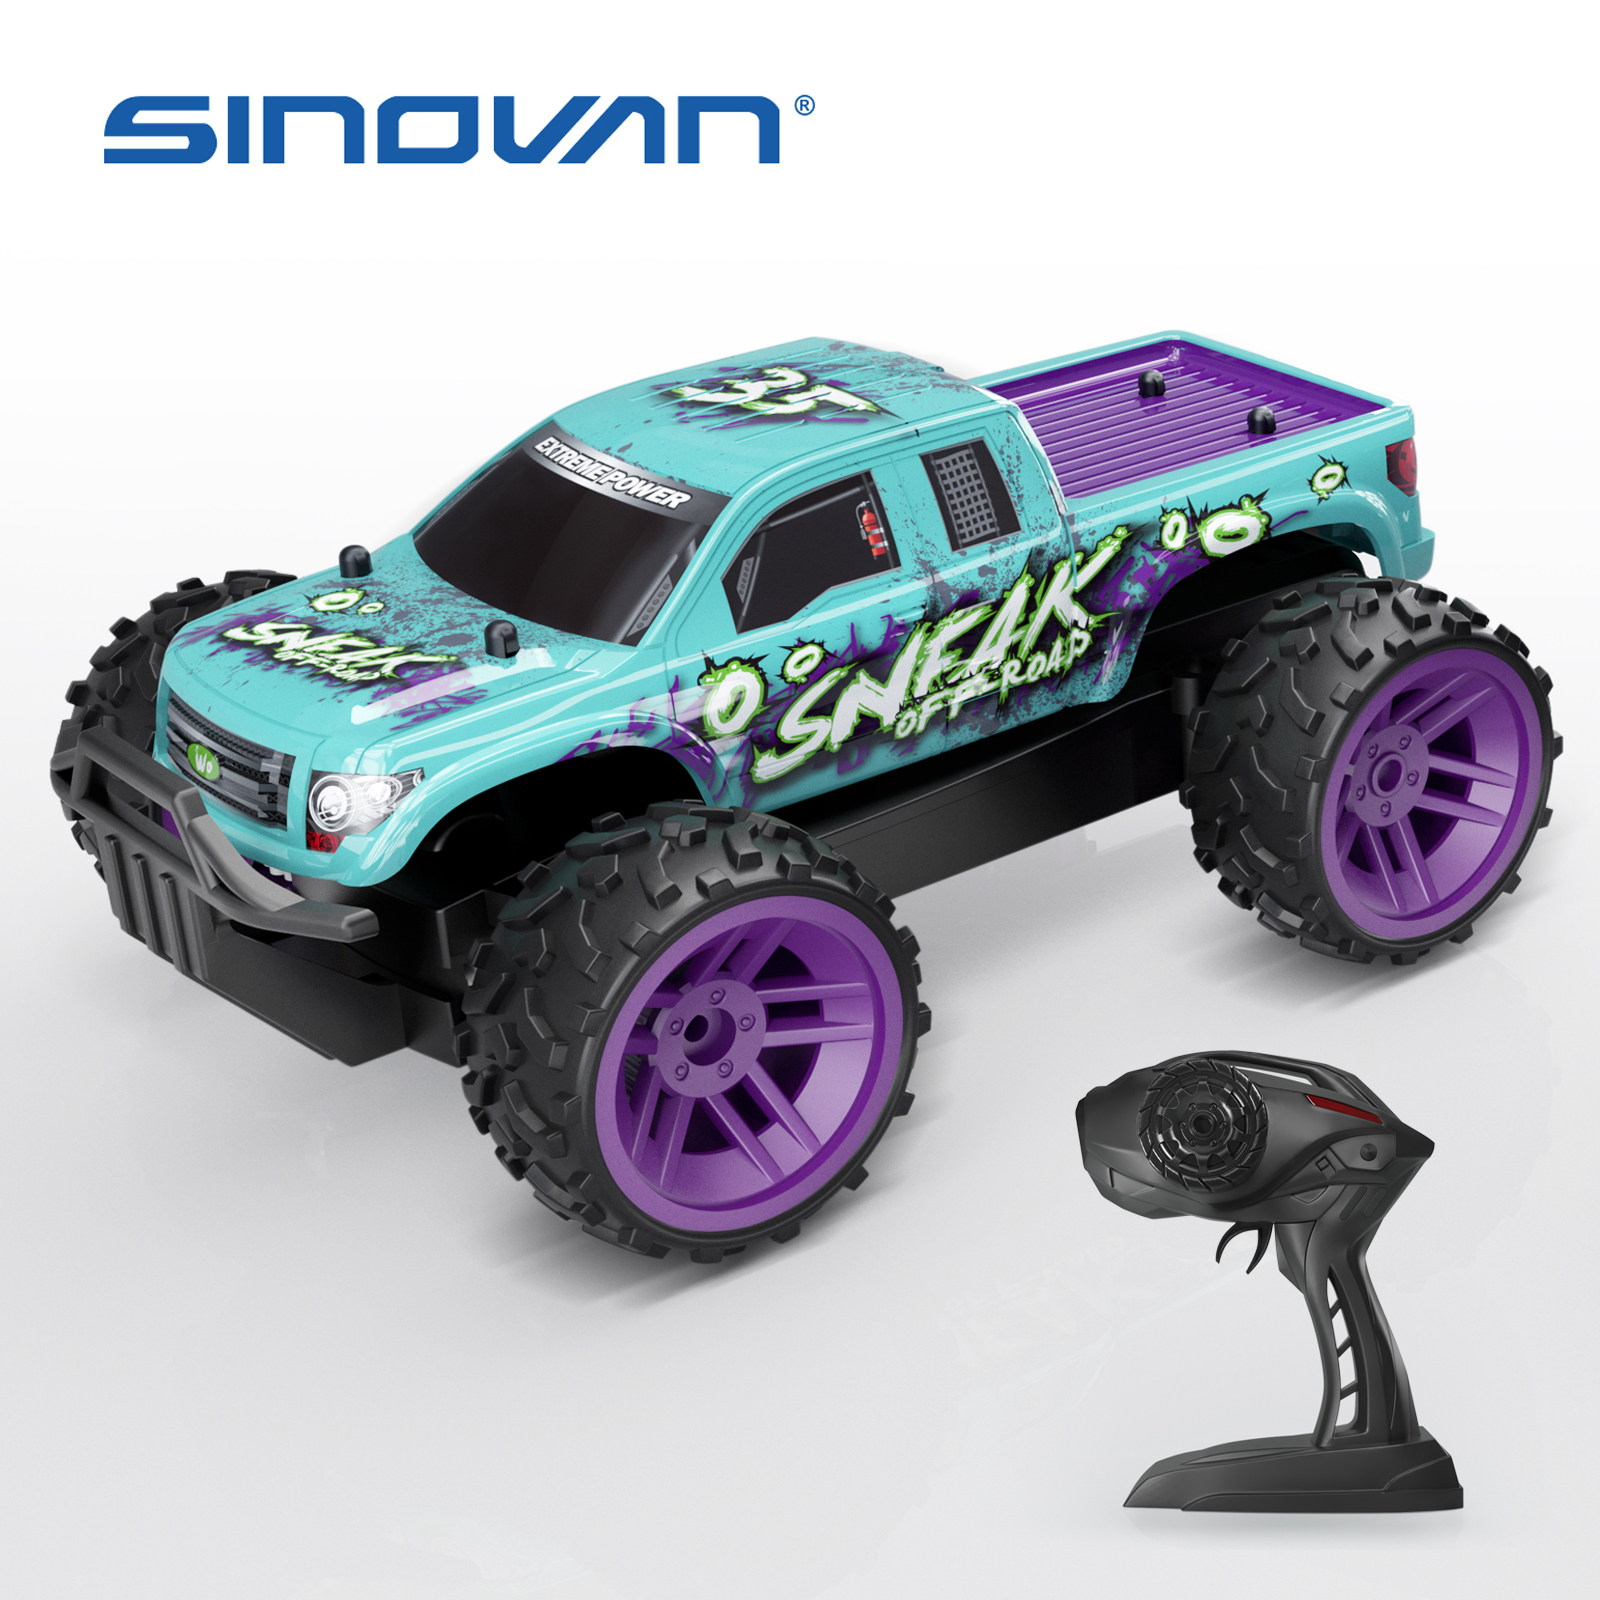 Sinovan RC Cars 2.4GHz High Speed RC Car 1:36 Remote Control Car Toys for Kids Cool Off Road Rar Children's Toys Gifts